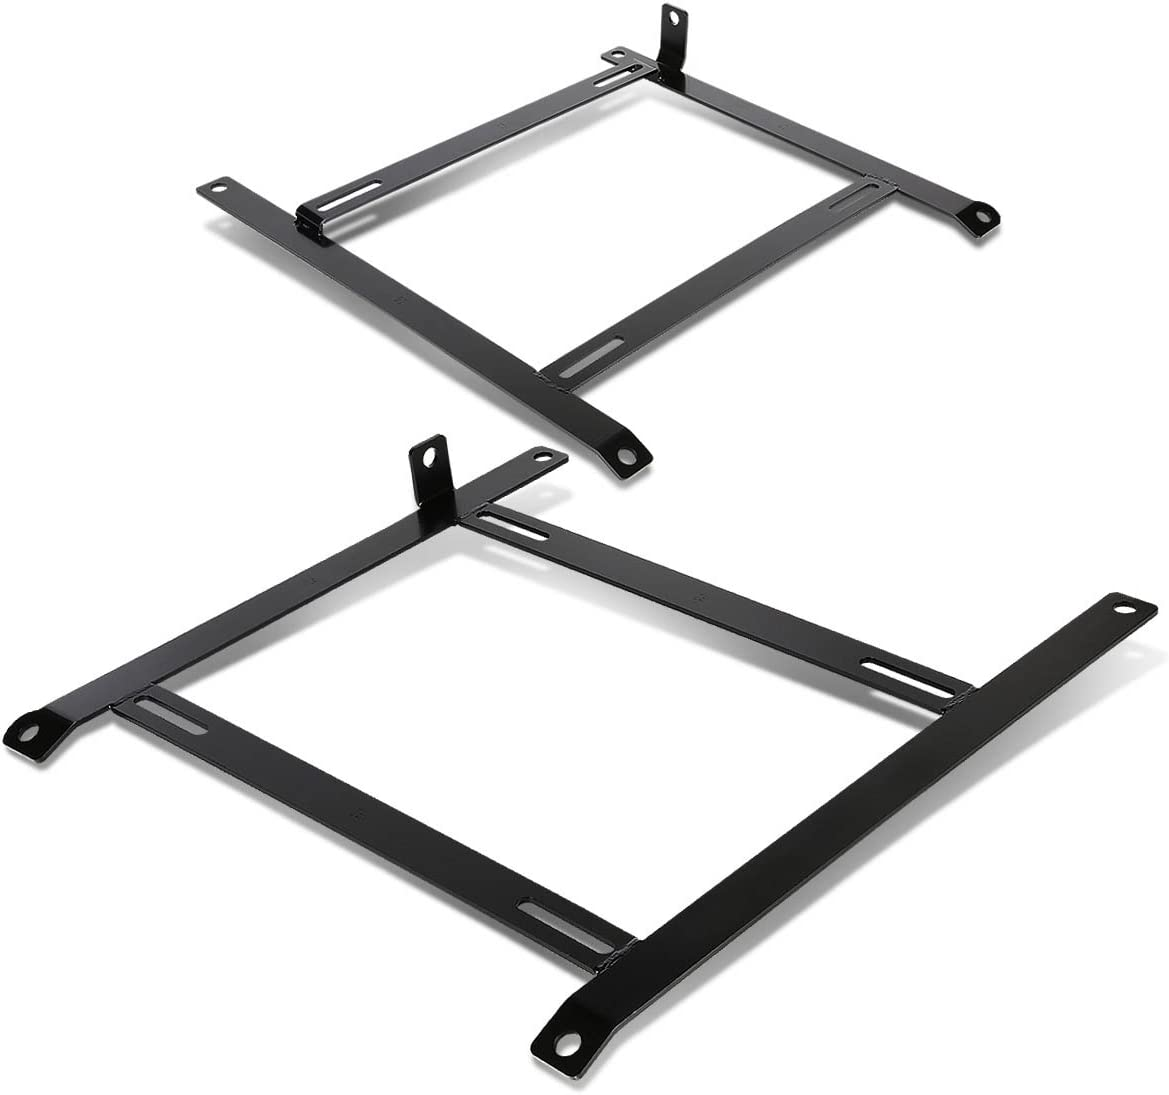 Replacement for Honda Translated S2000 AP1 Pair of 35% OFF Steel Tensile Low Mount